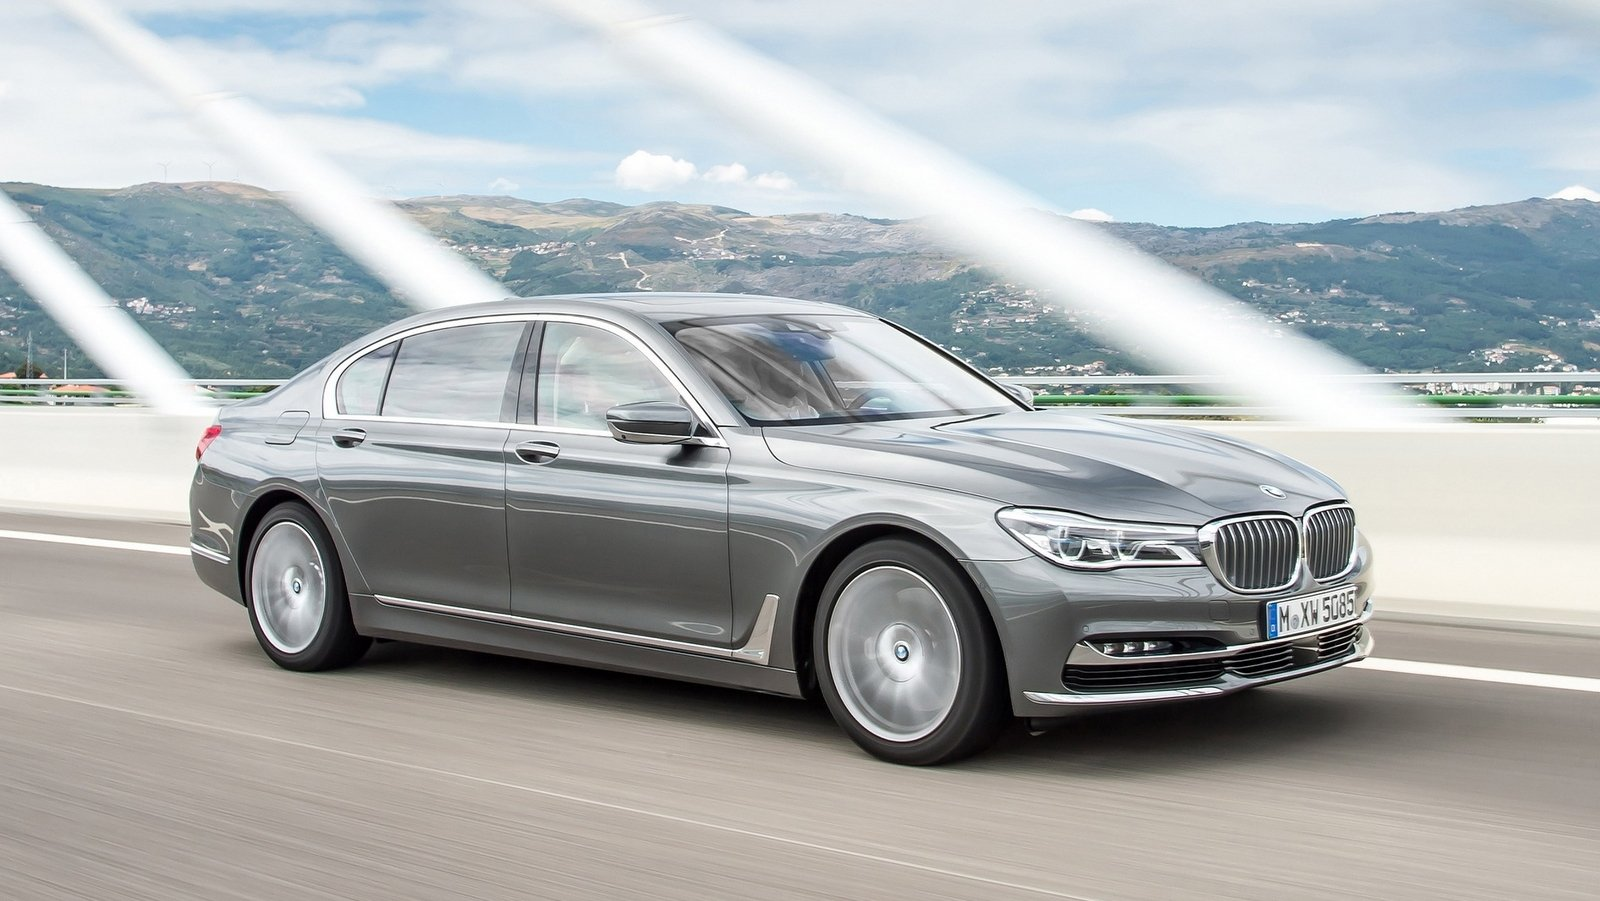 2017 bmw 750d xdrive and bmw 750ld xdrive review - top speed